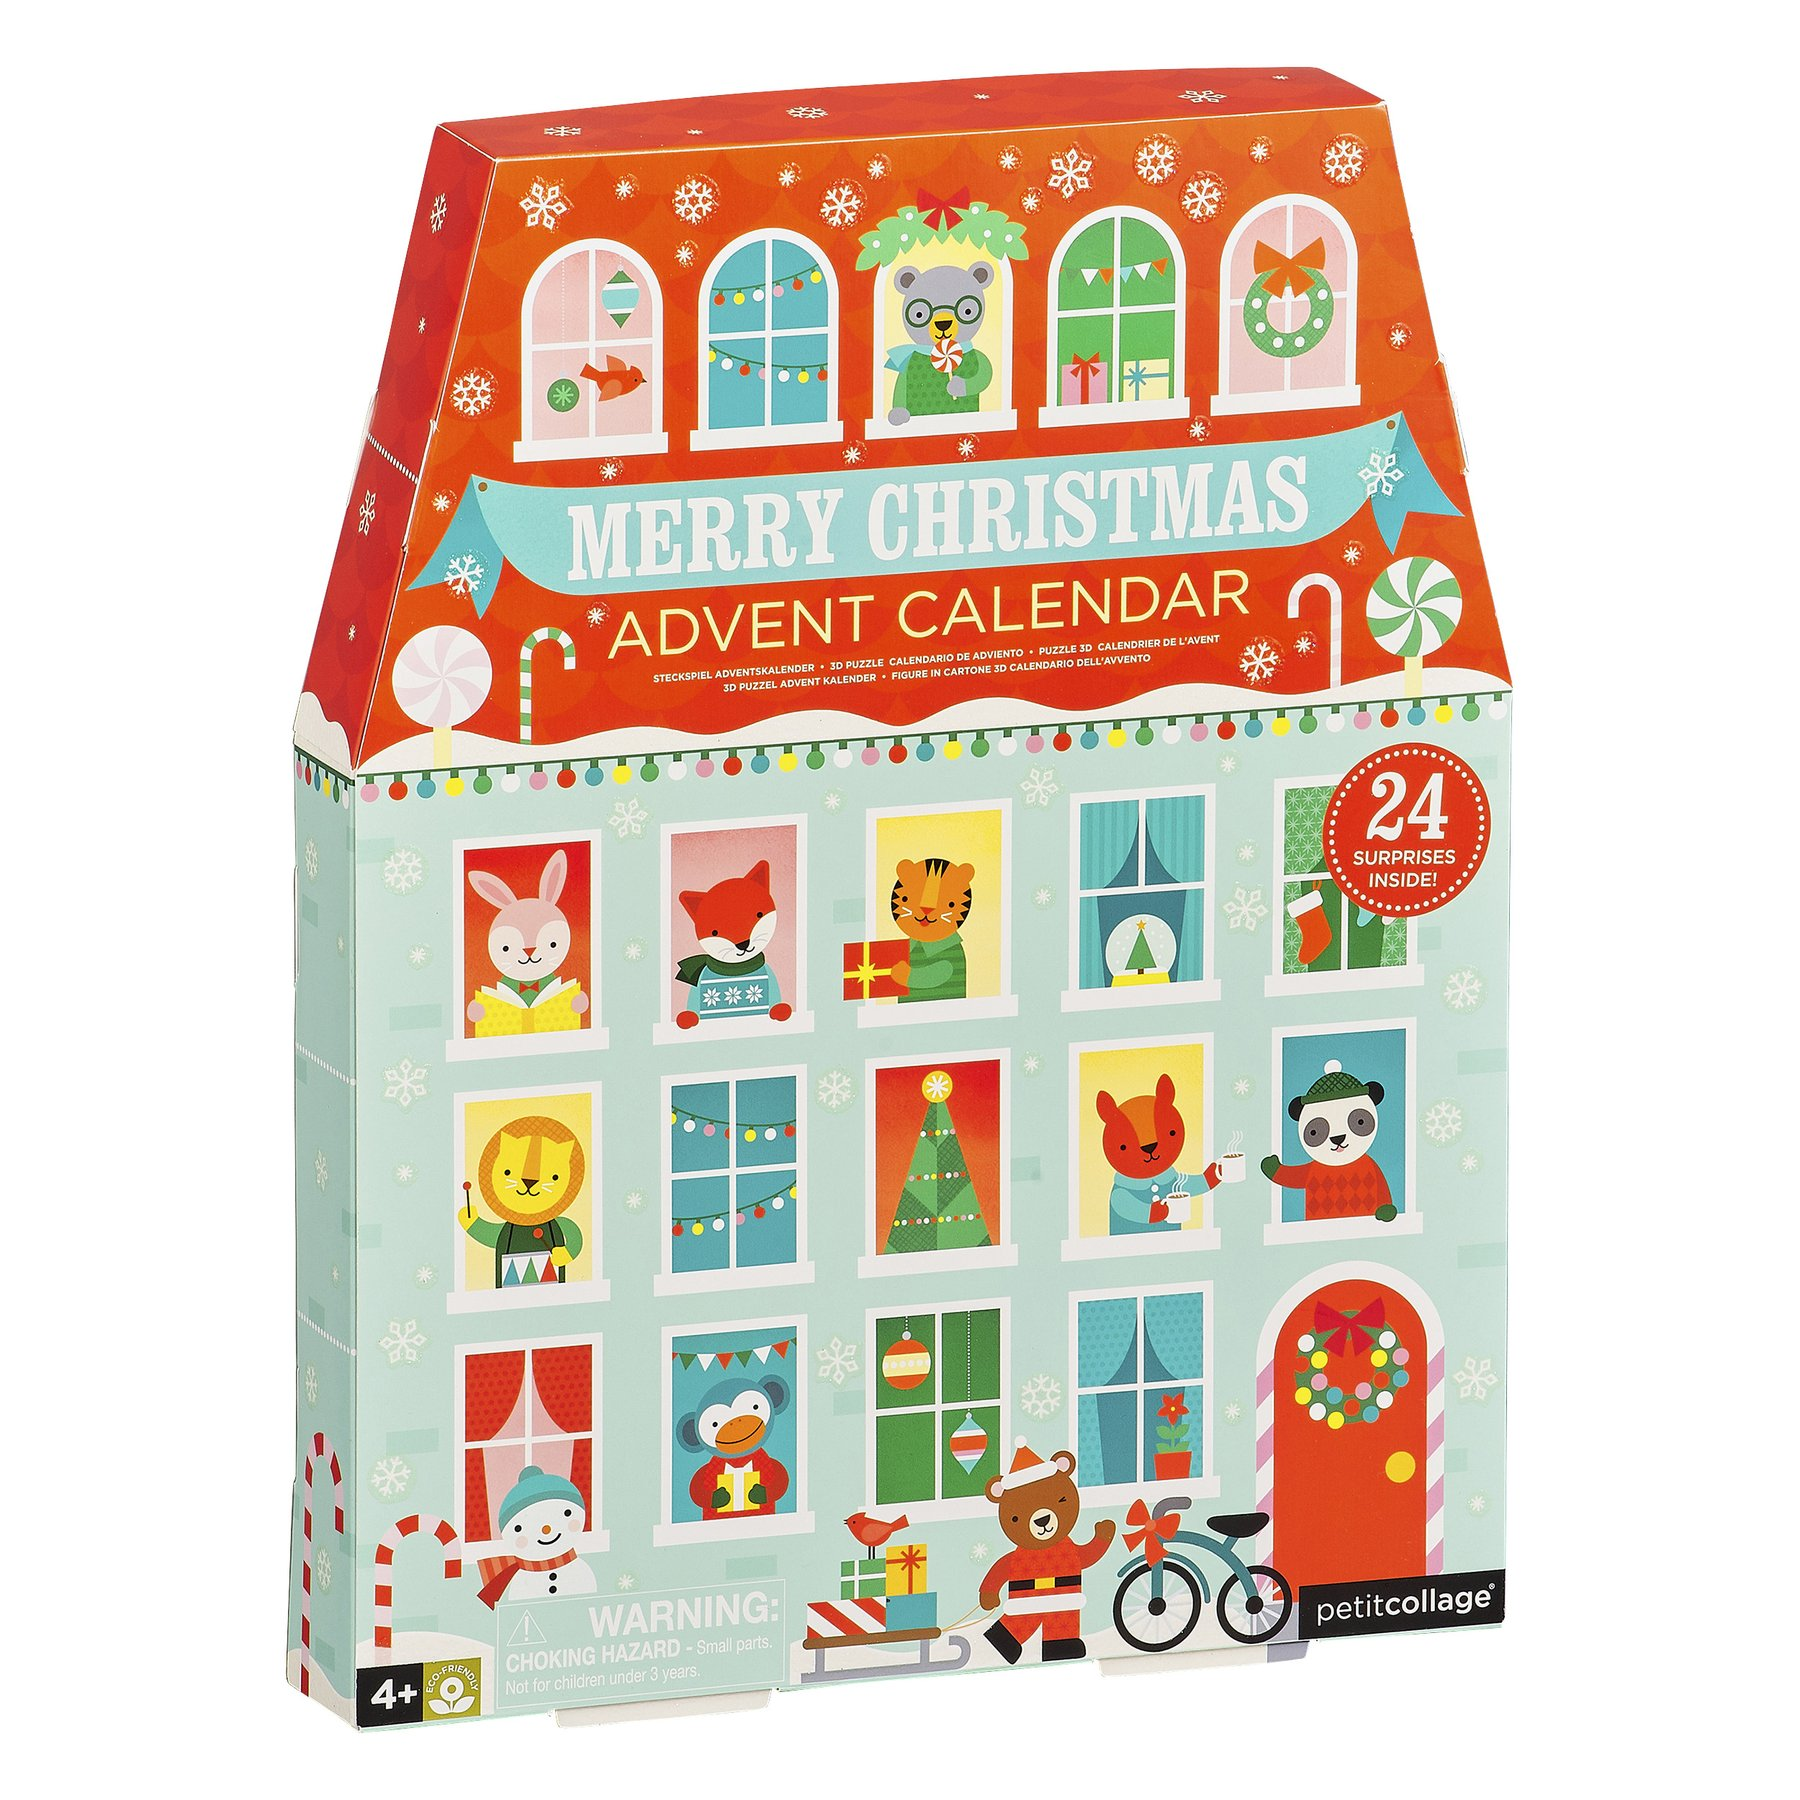 Petit Collage Merry Christmas Advent Calendar